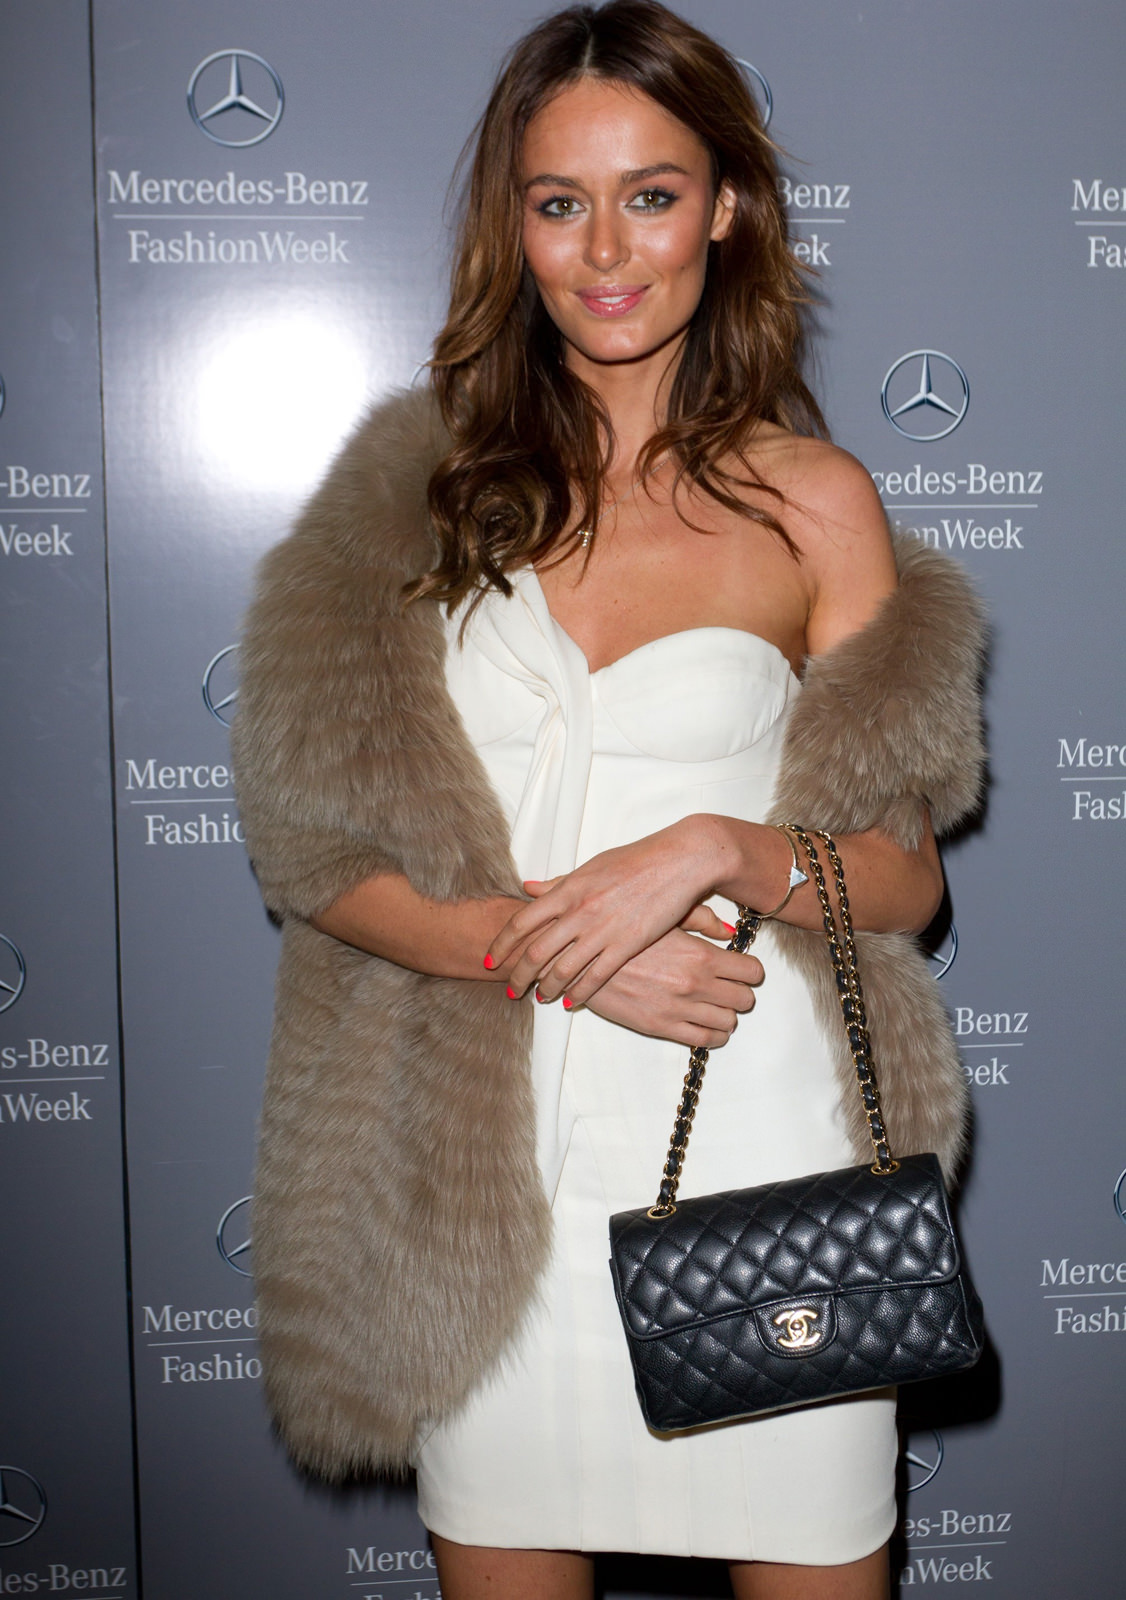 Nicole Trunfio Photo Gallery